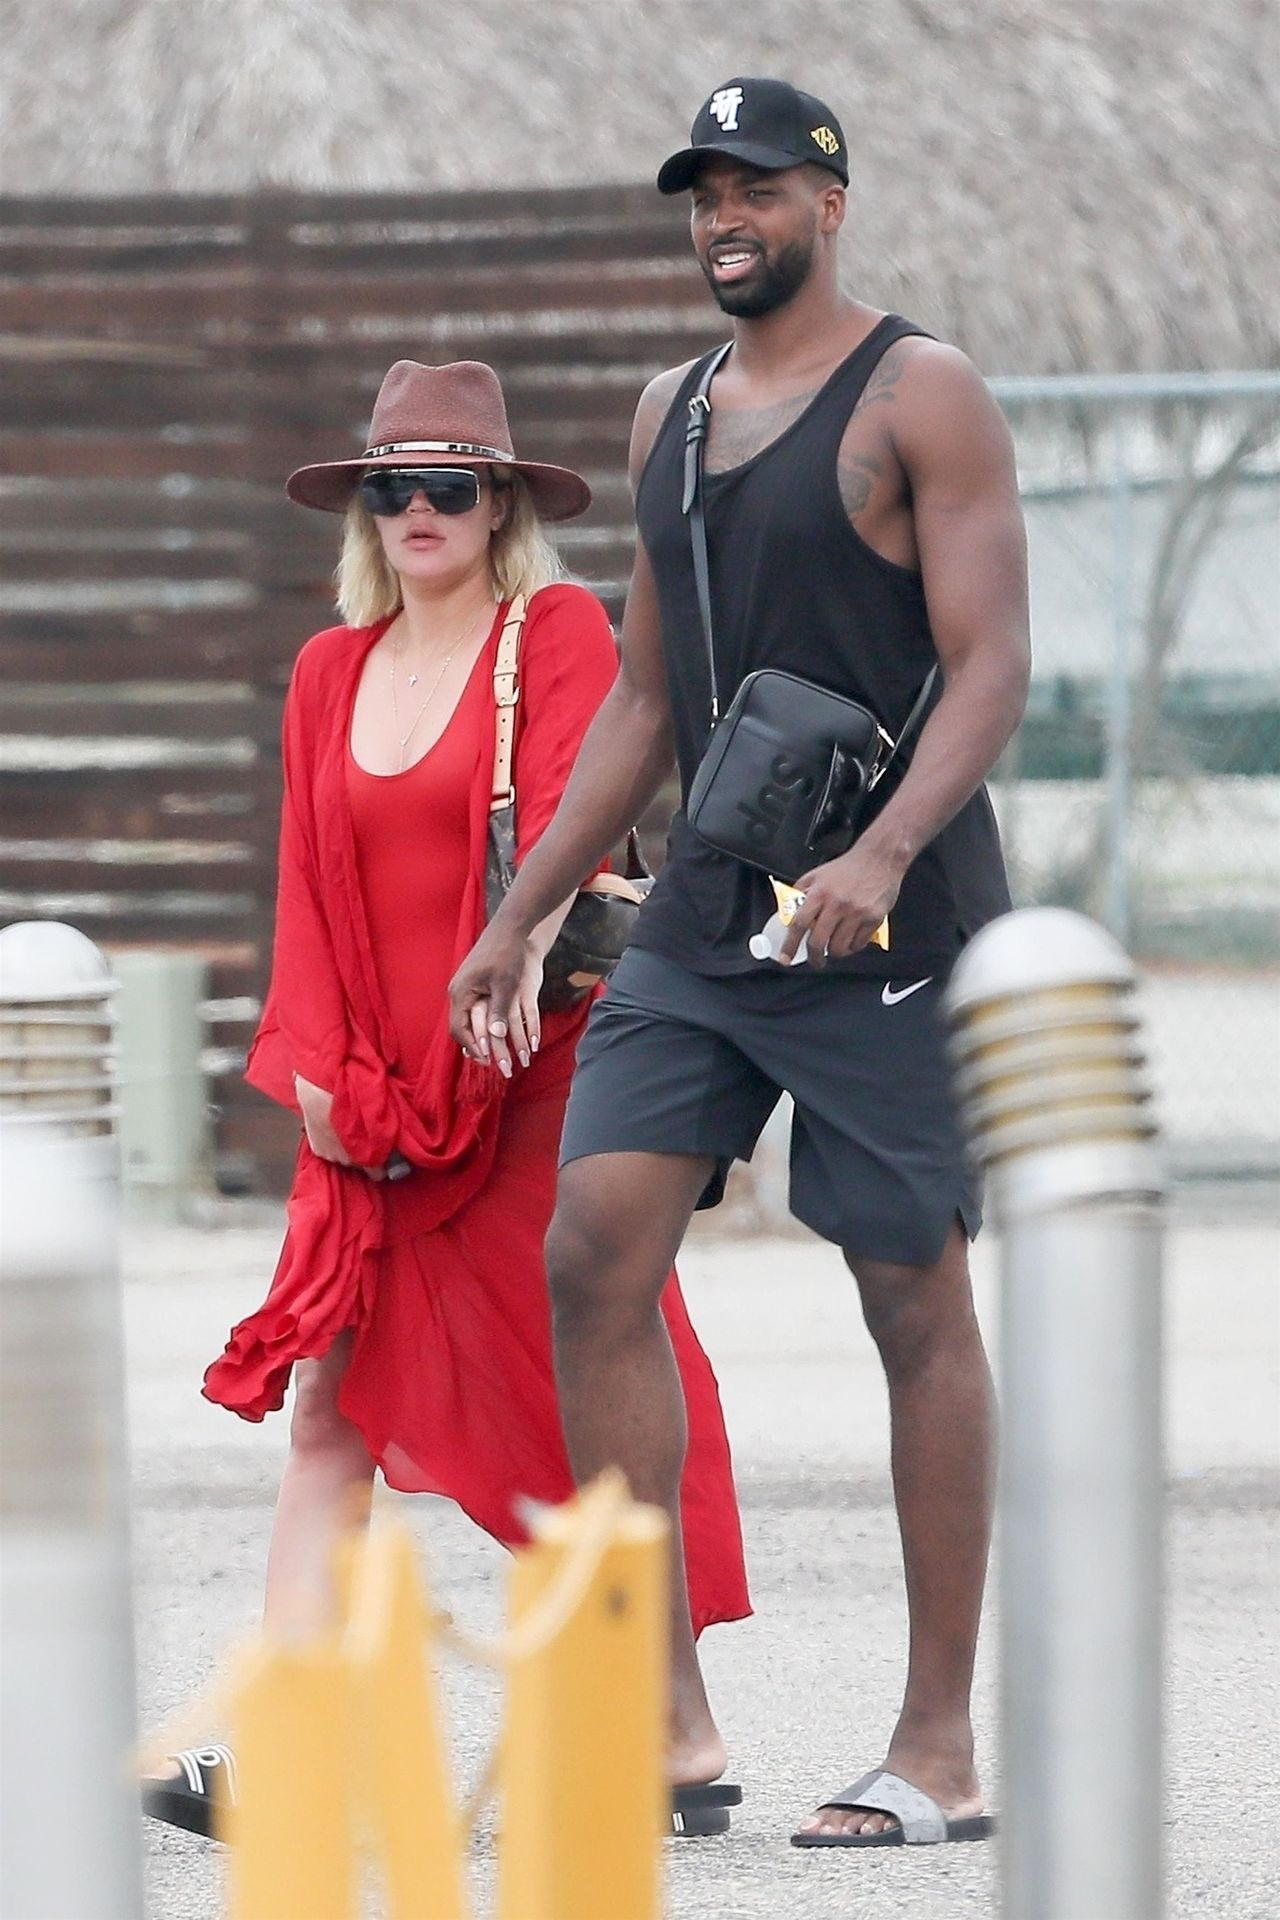 *EXCLUSIVE* Khloe Kardashian and Kendall Jenner head home after their double date on the beach in Mexico Khloe Kardashian, Tristan Thompson